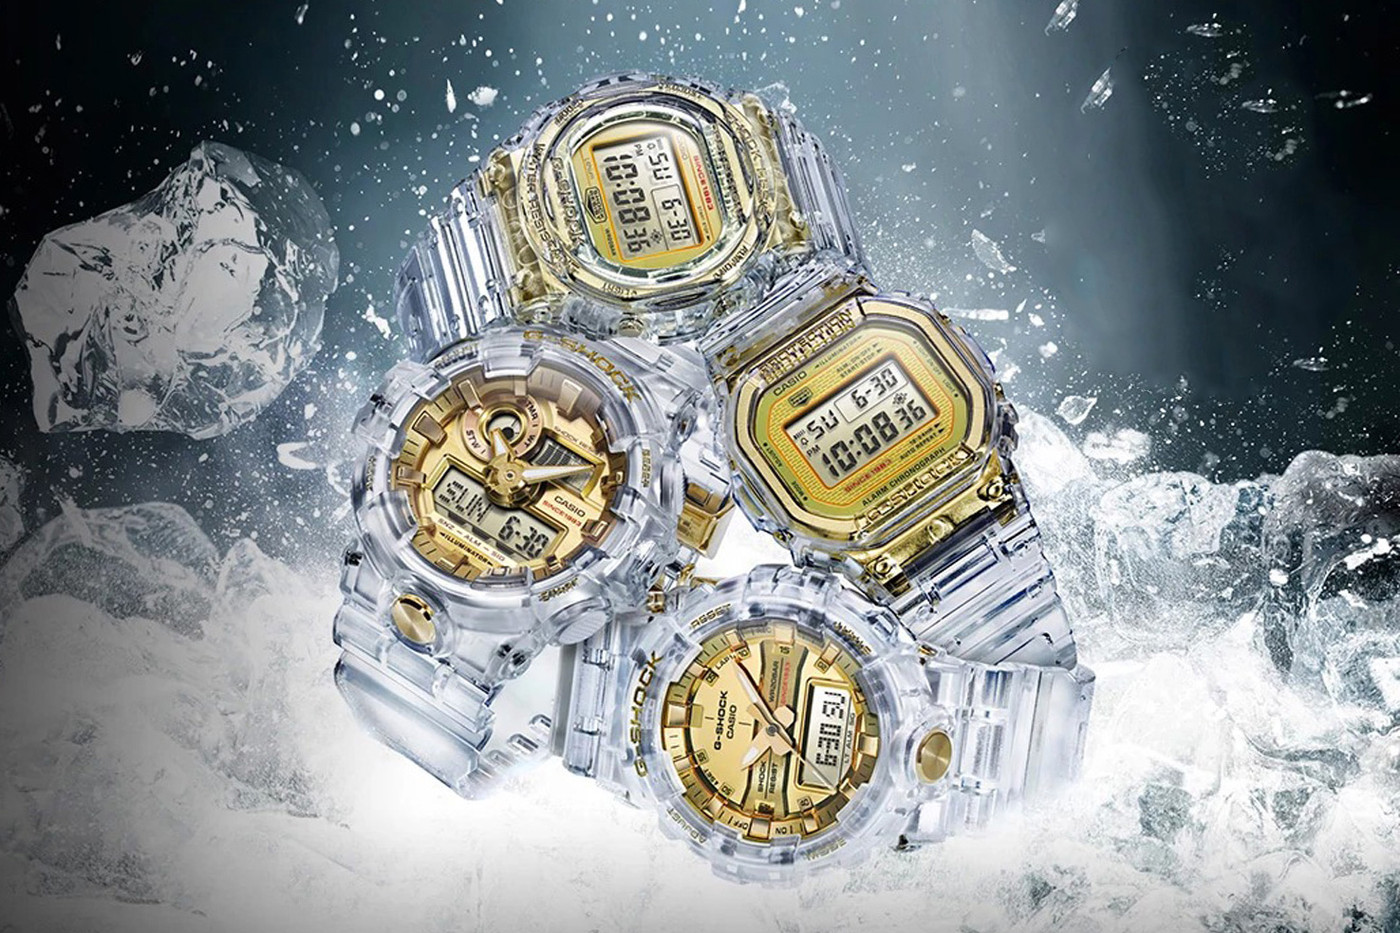 casio-g-shock-glacier-gold-see-through-watch-collection-1